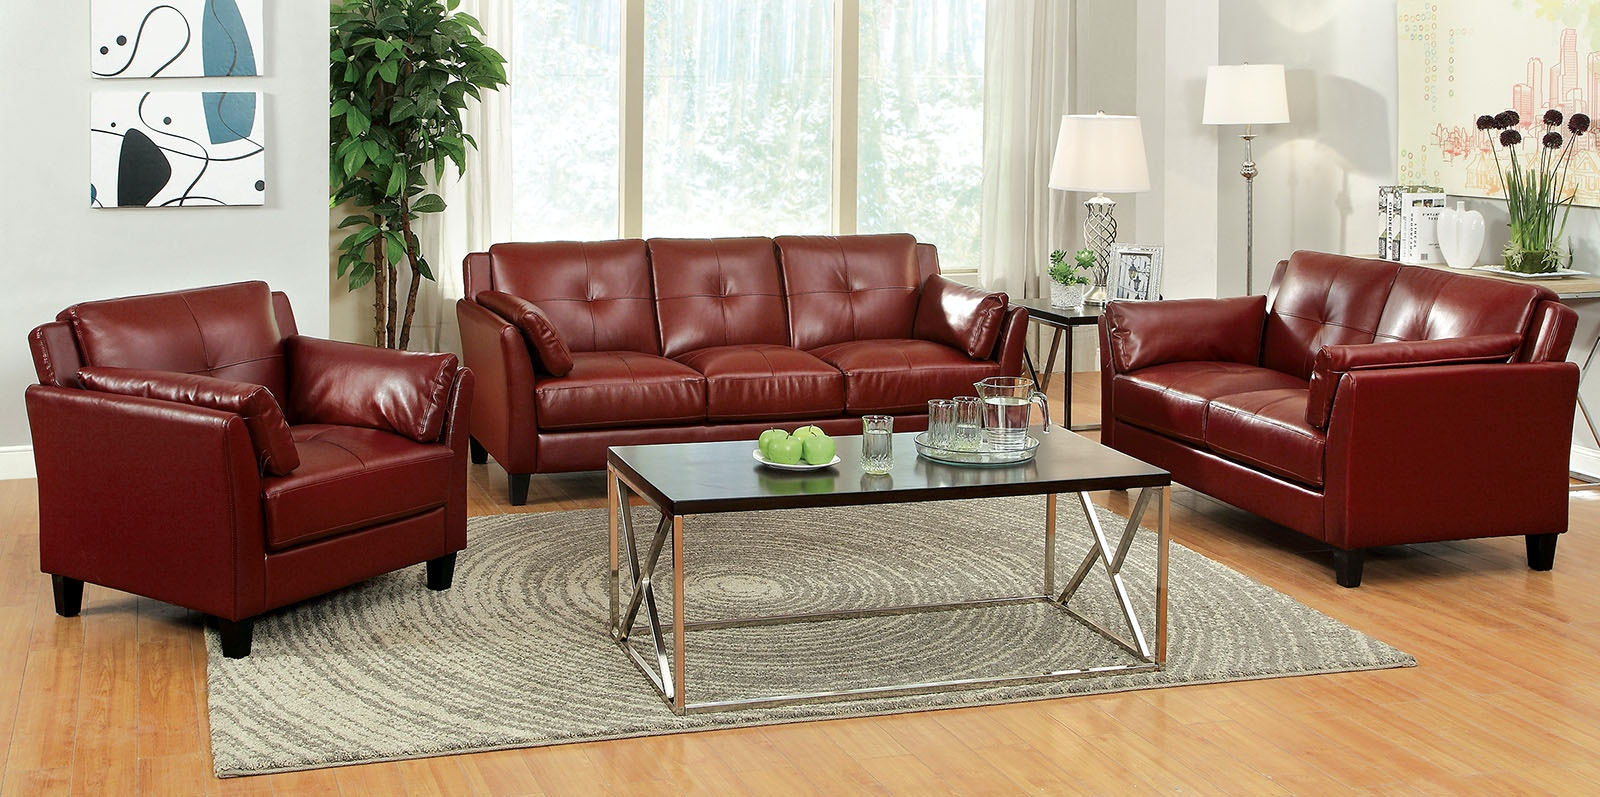 one sofa seat stickley leather furniture of america living room frame back cm6717rd sf 1 at the mall